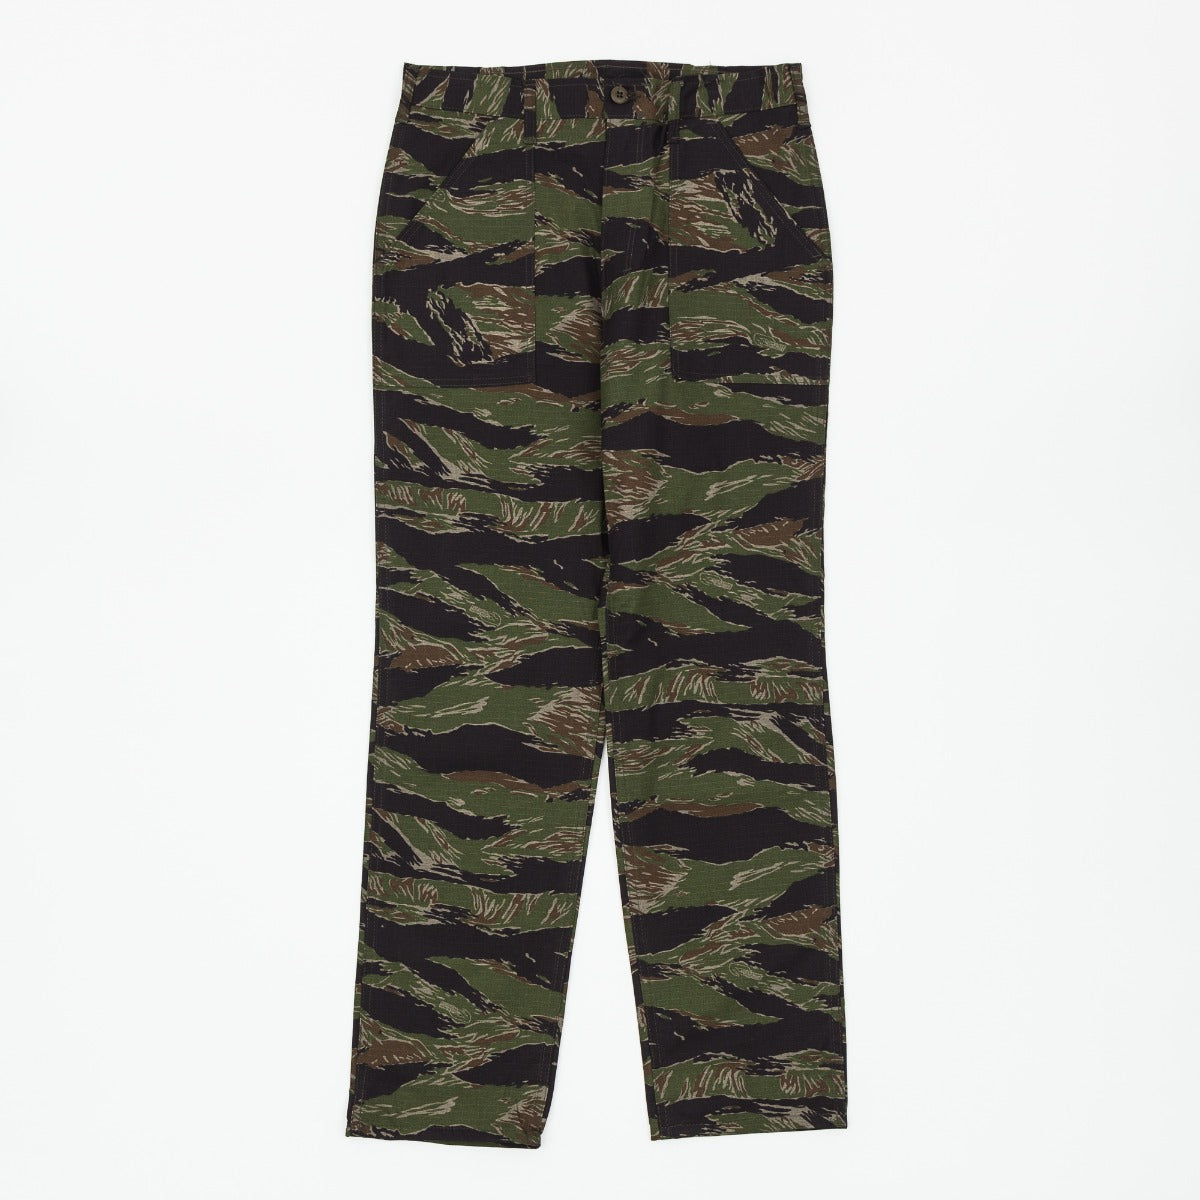 Stan Ray Taper Fit 4 Pocket Fatigue Pant